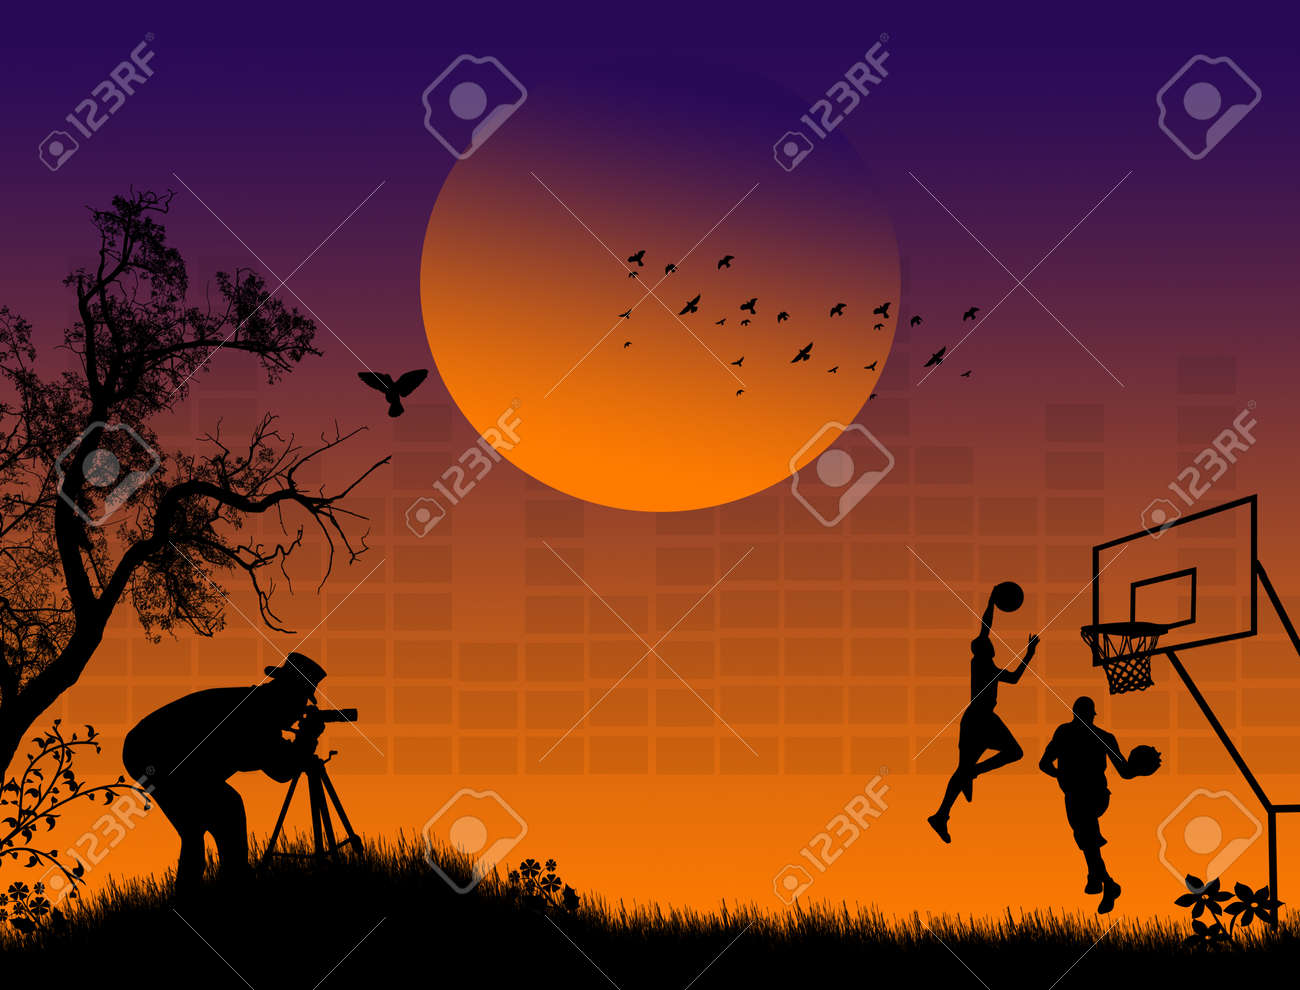 Silhouette of photographer at sunset shoot basketball players Stock Vector - 15635891